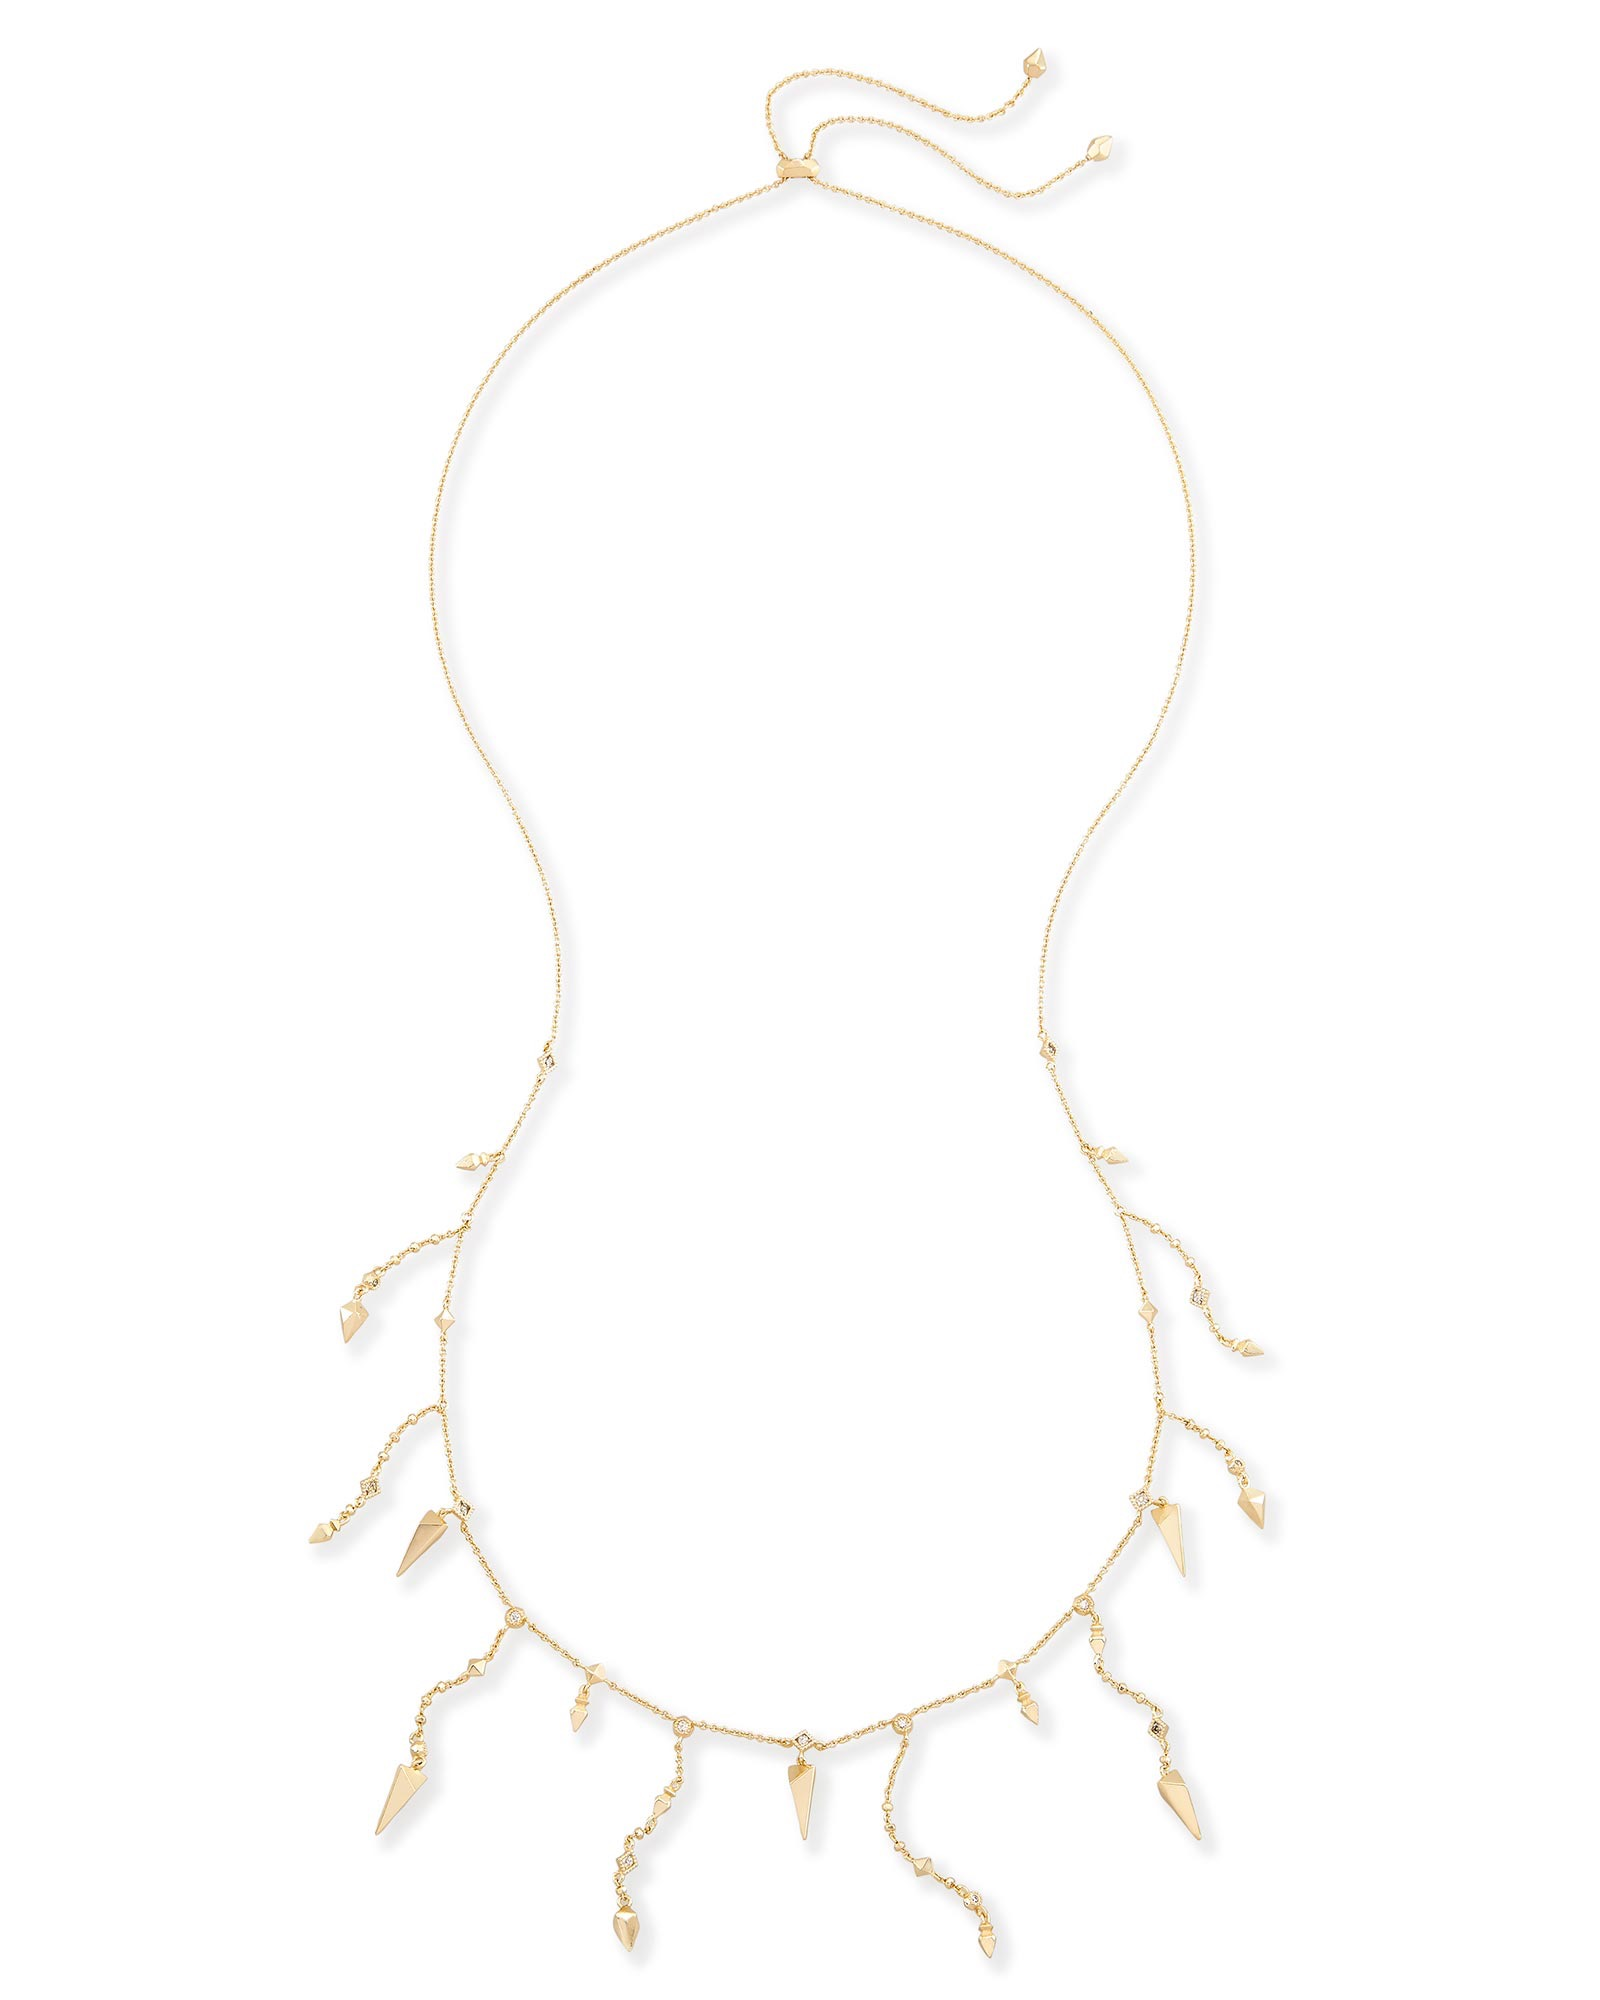 Loralei Long Necklace